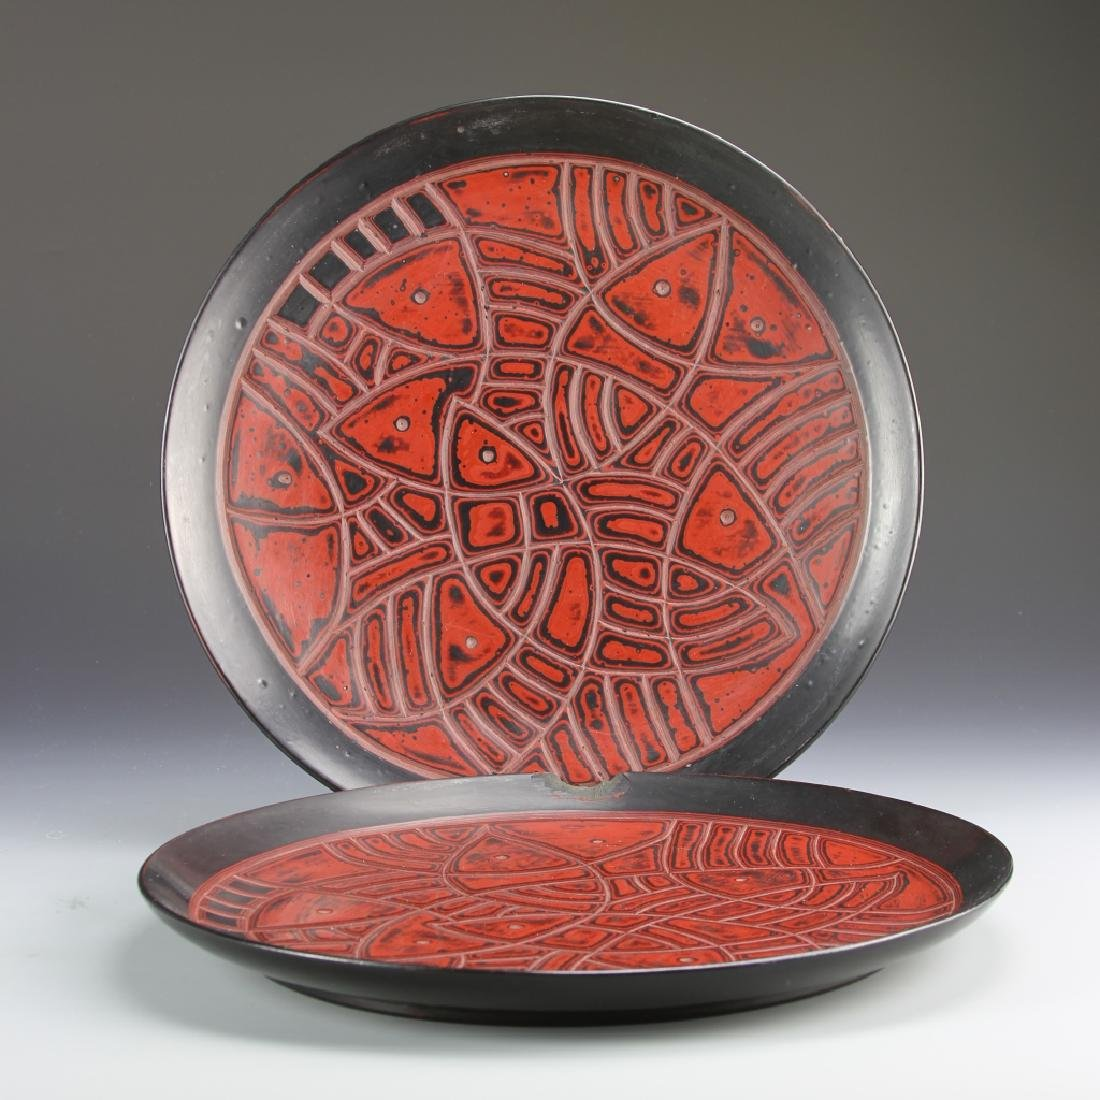 Pair of Chinese Lacquer Plates